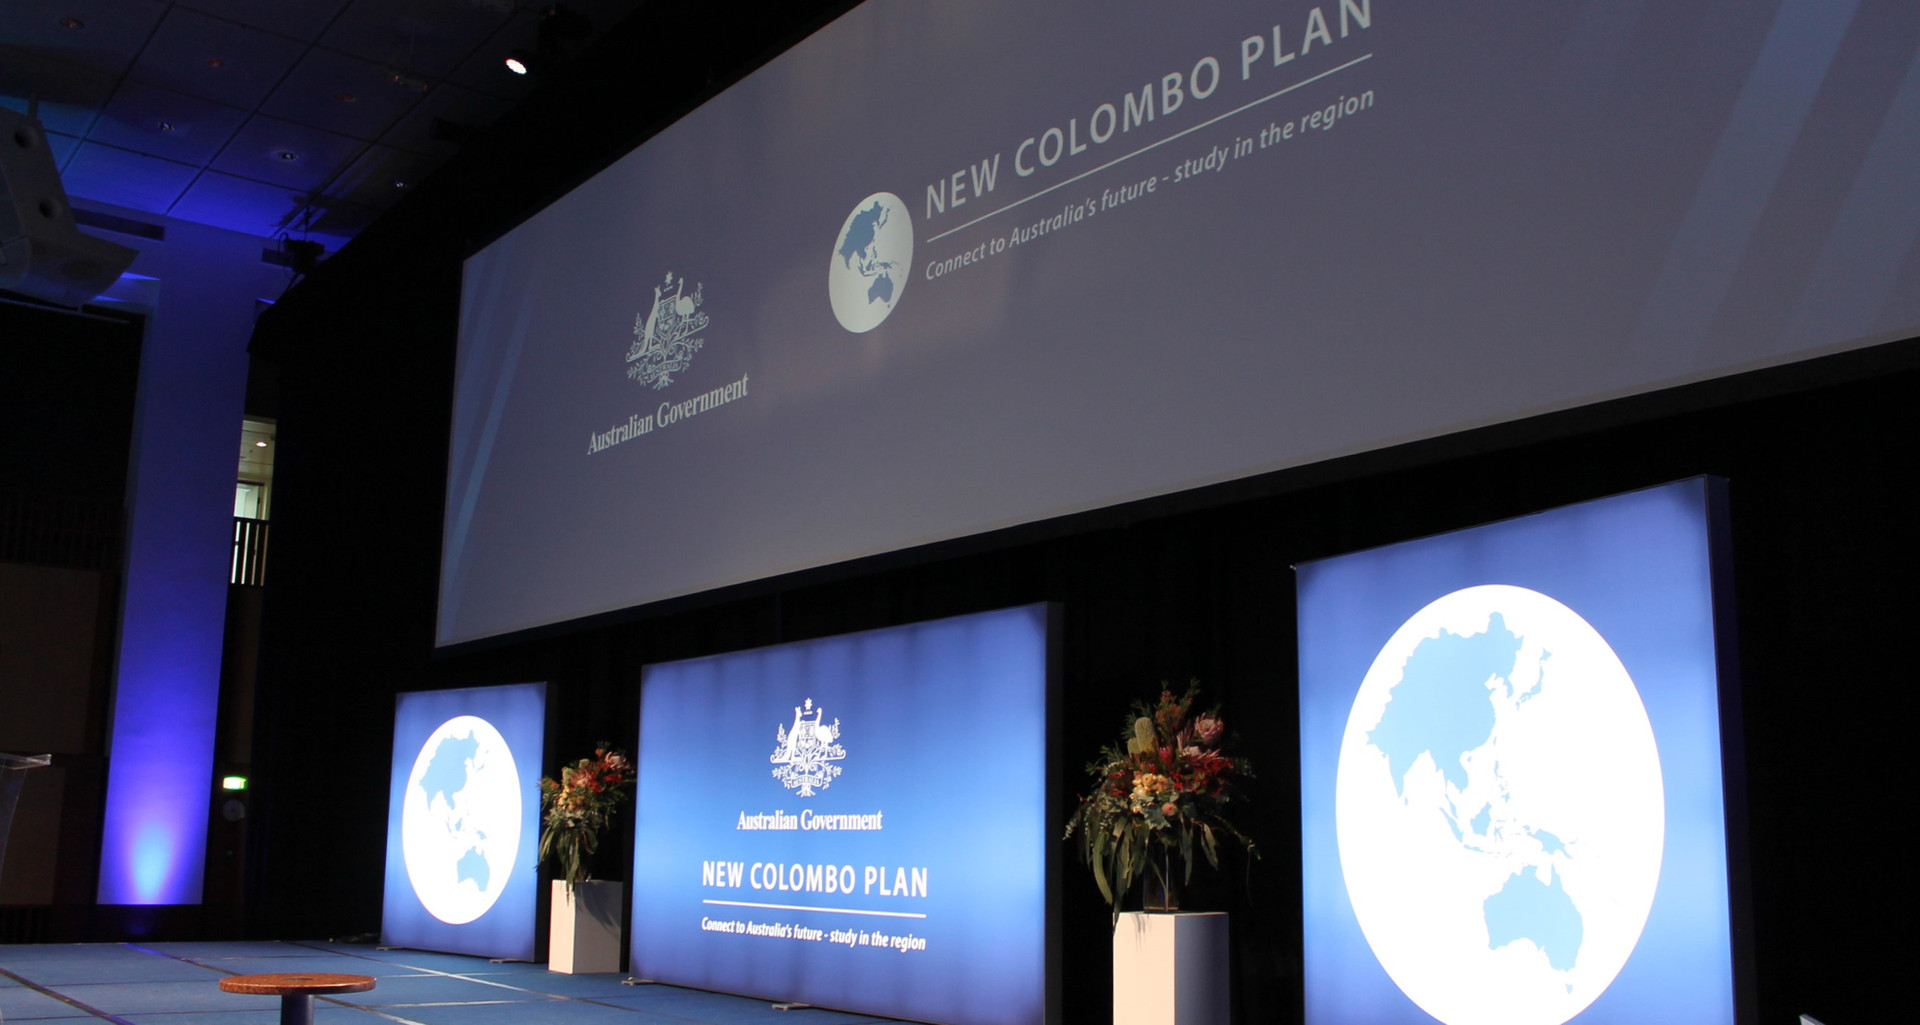 New Colombo Plan Stage Set